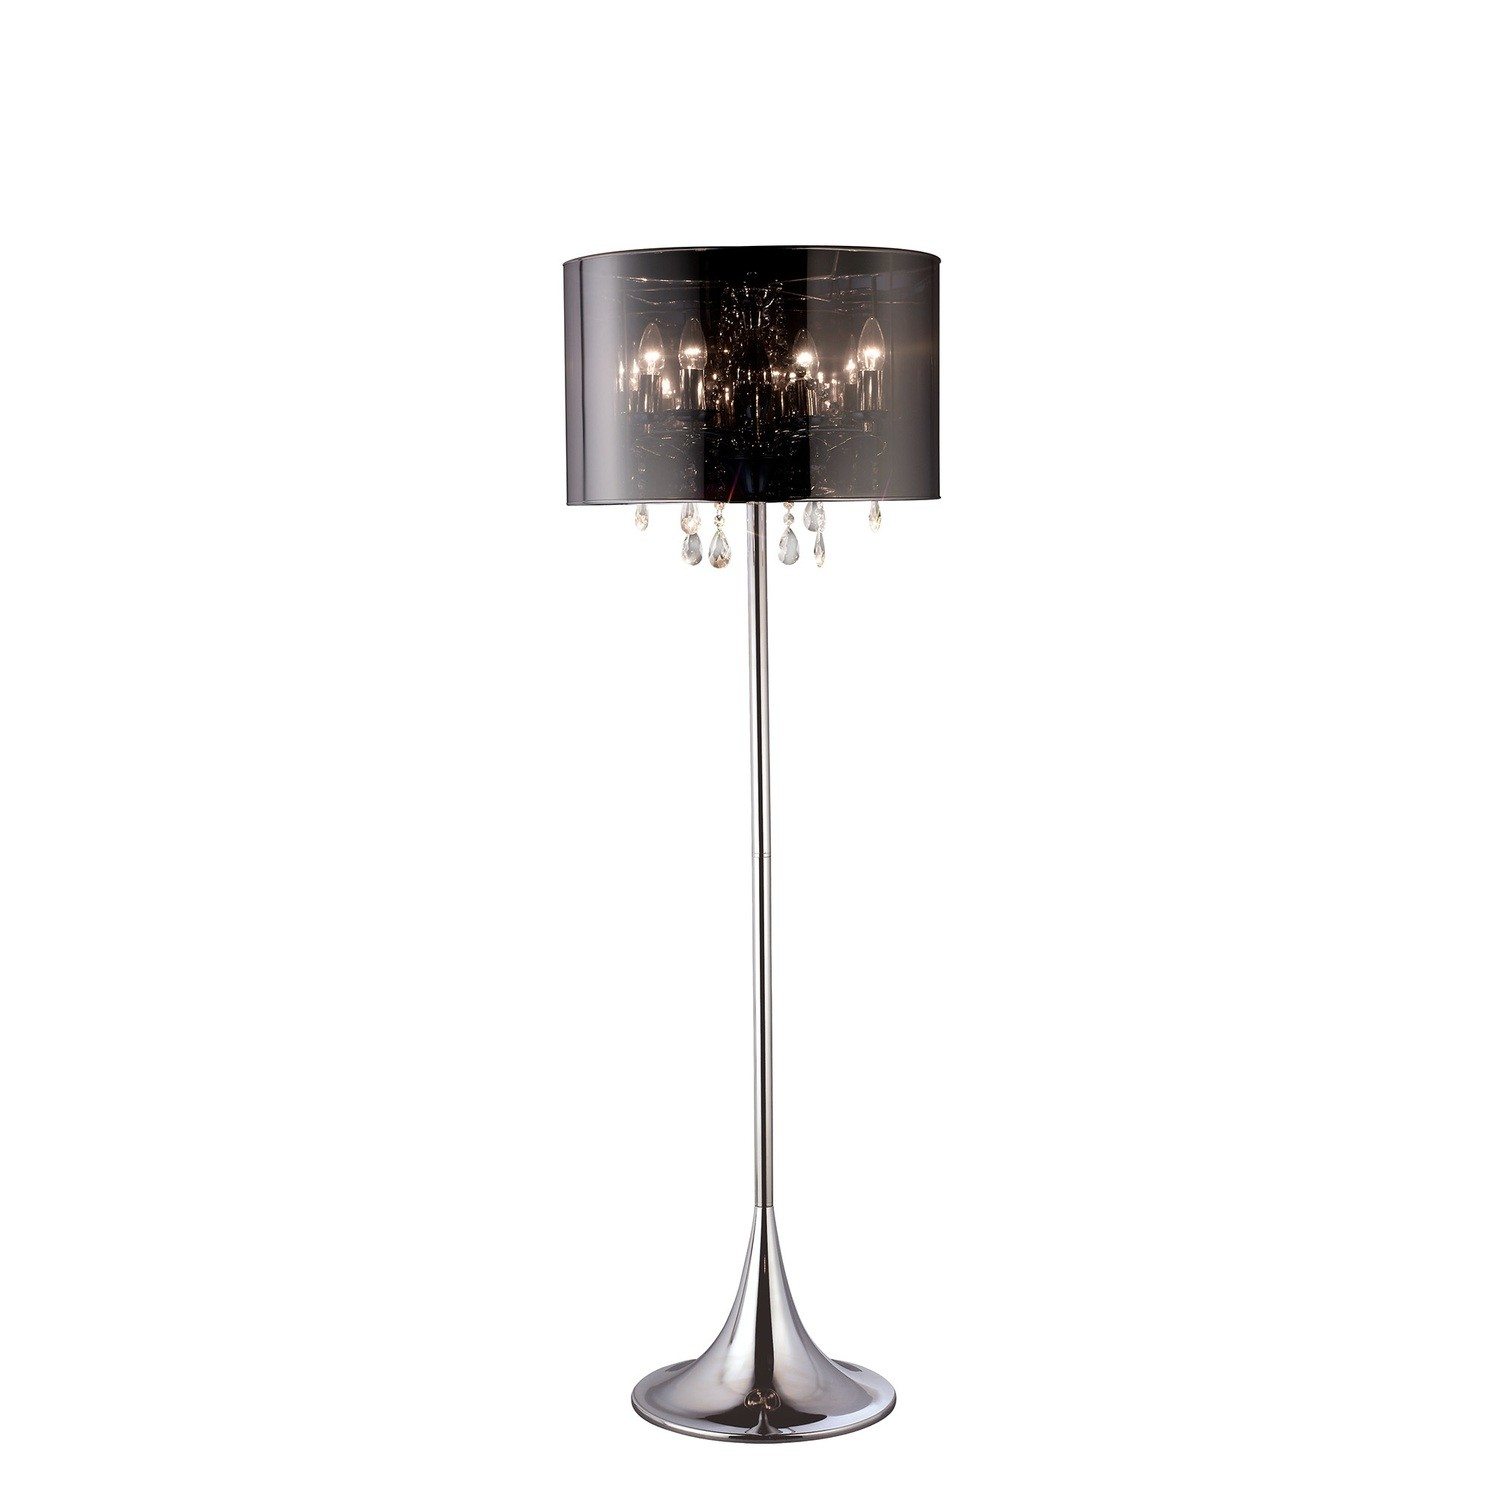 Trace Floor Lamp With Chrome Shade 4xE14 Light Polished Chrome//PVC/Crystal